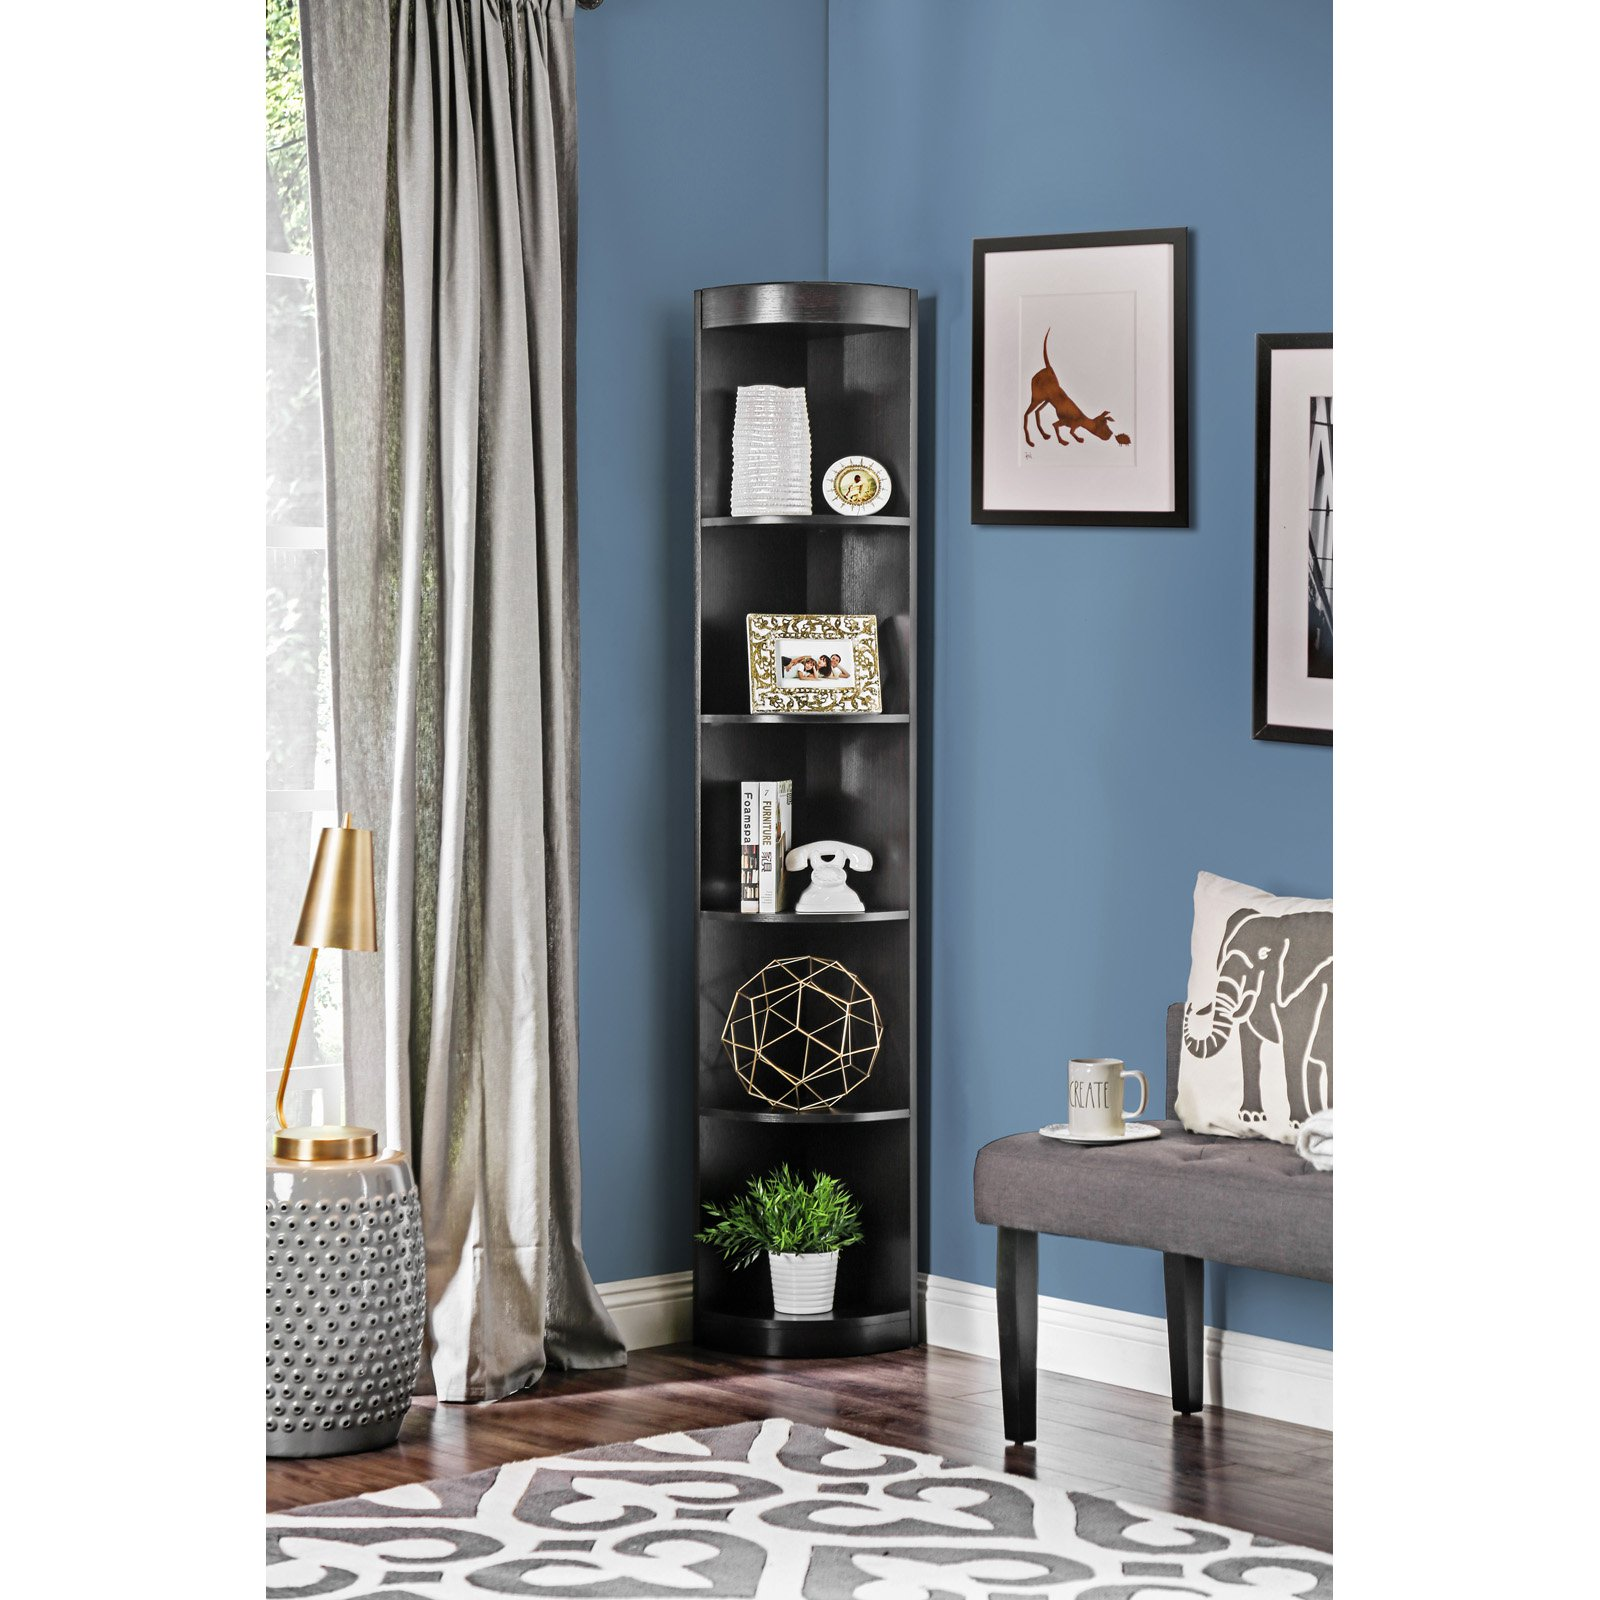 Furniture of America Corner 5-shelf Display Stand Bookshelf by Urbal Furnishings